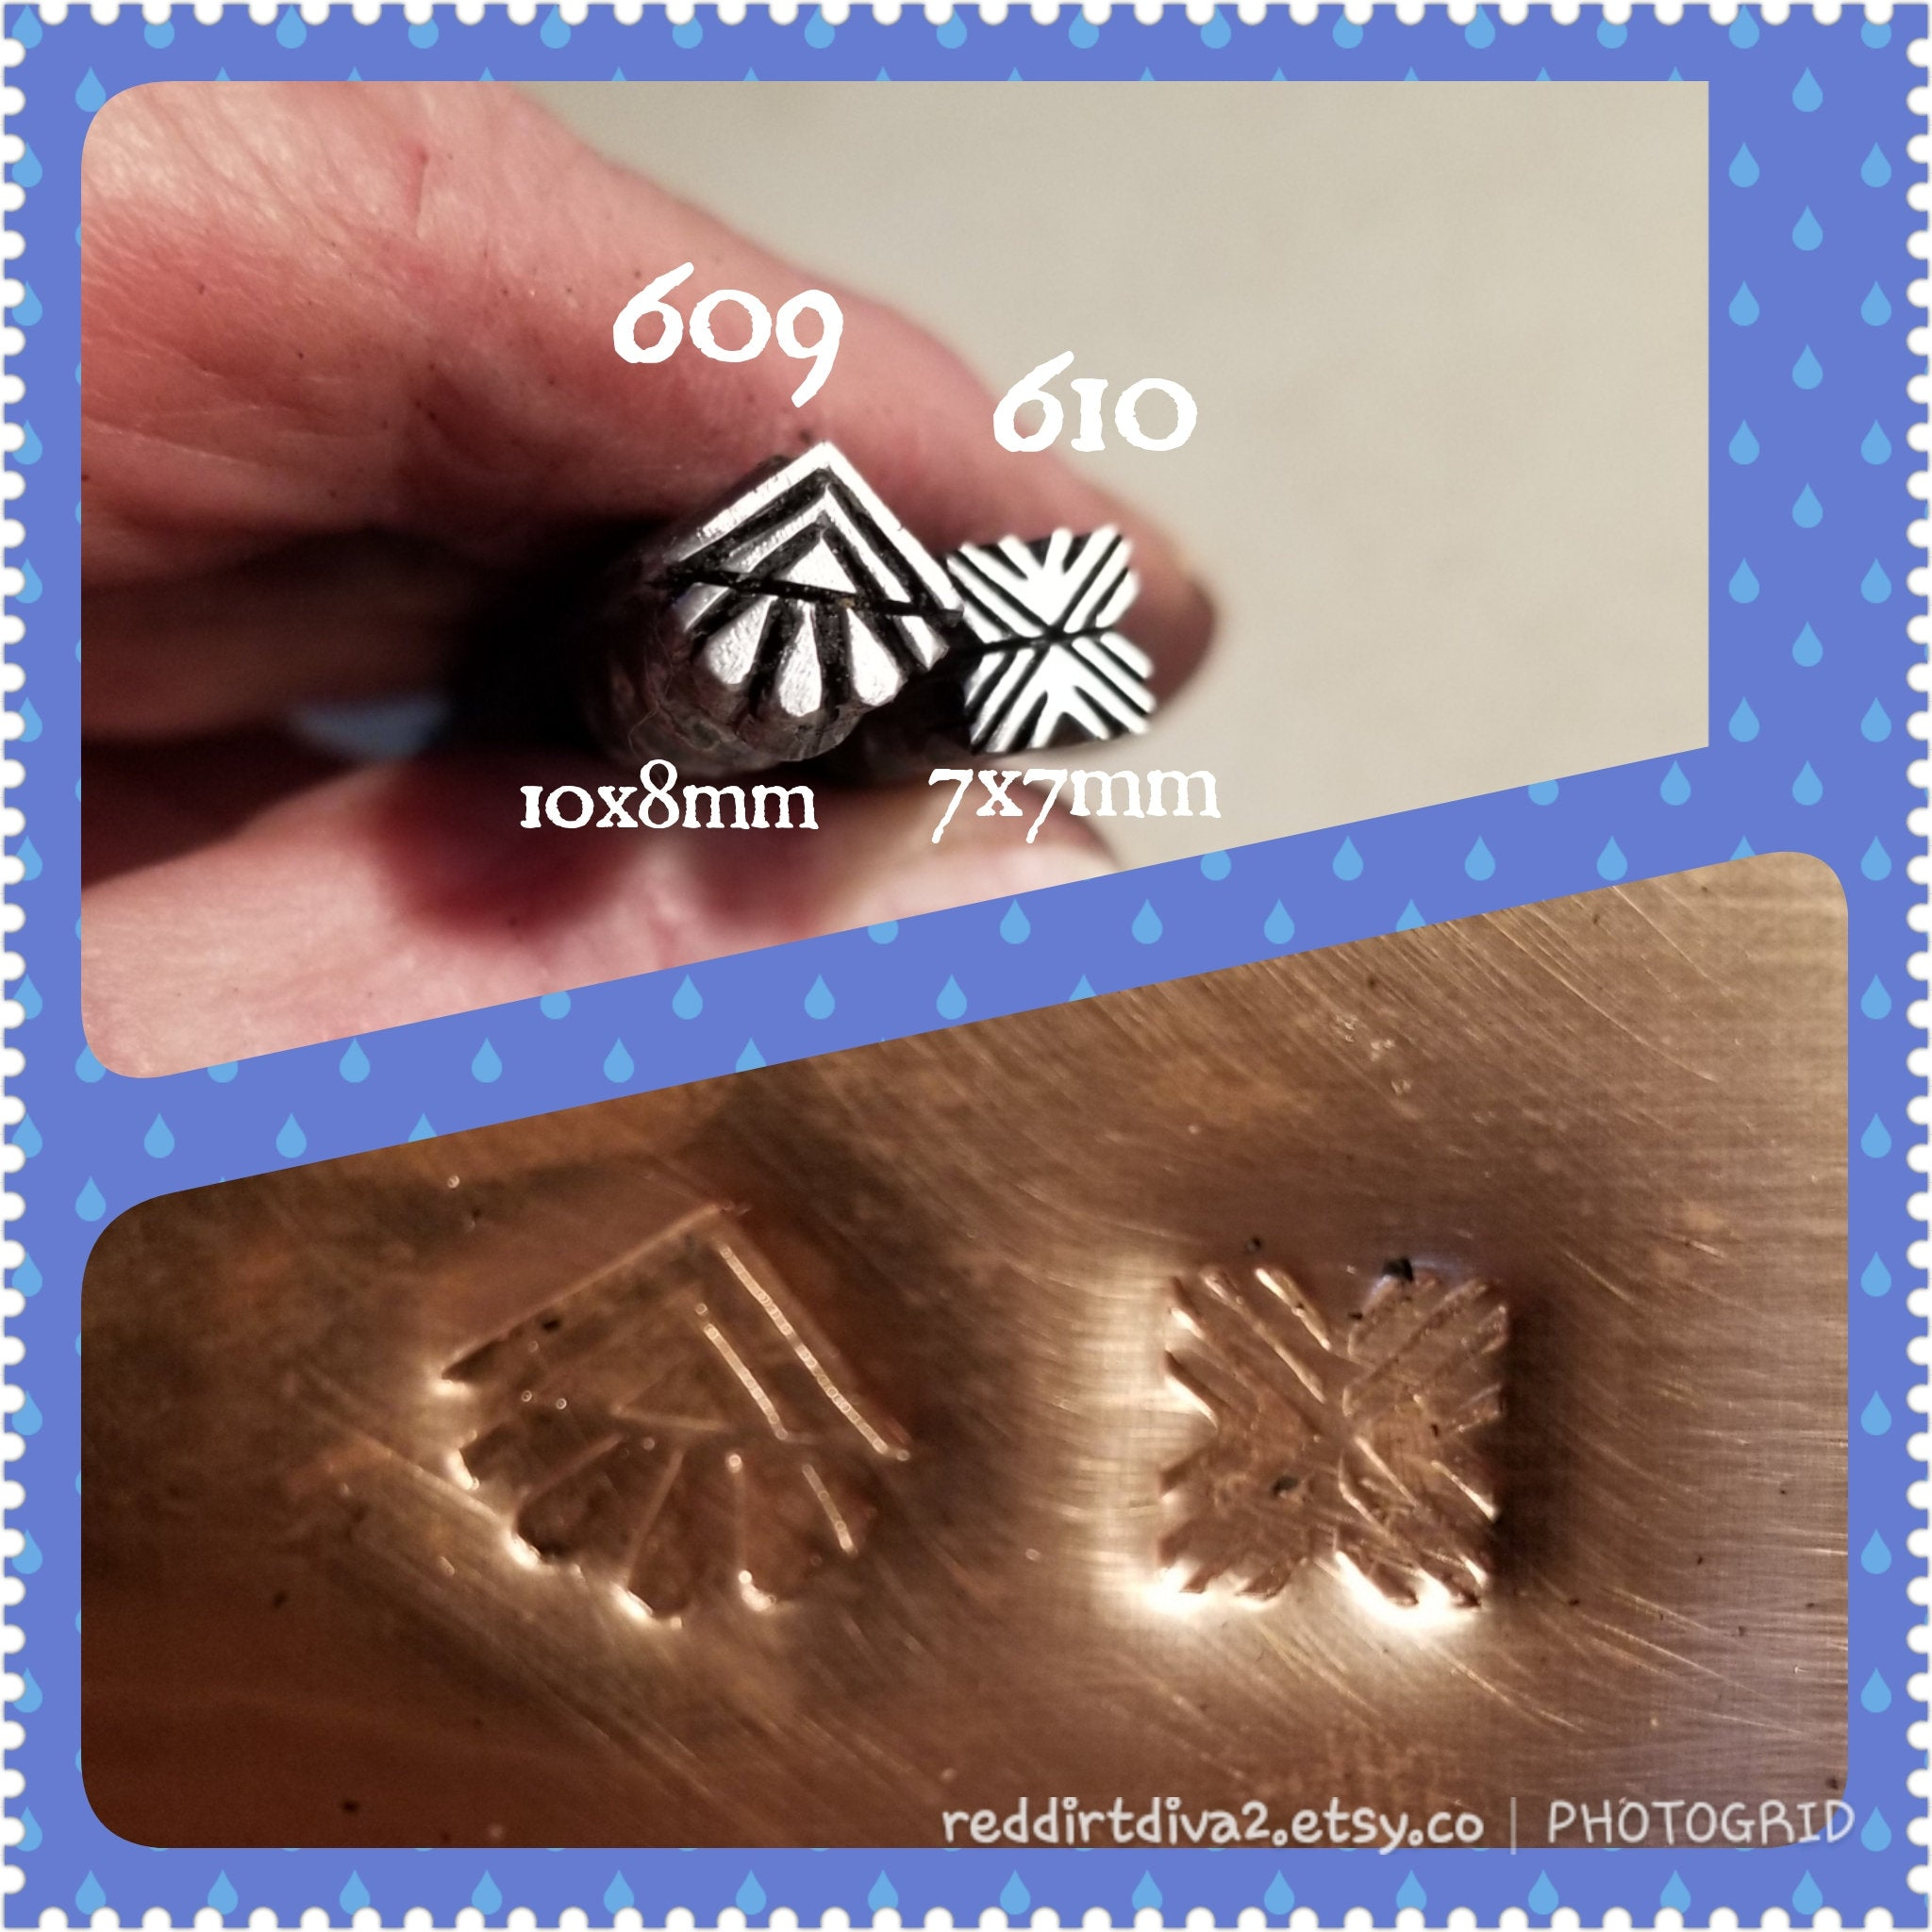 UST70. OOAK metal stamps for jewelry - jewelry stamps - leather stamps - design stamps - Red Dirt Diva